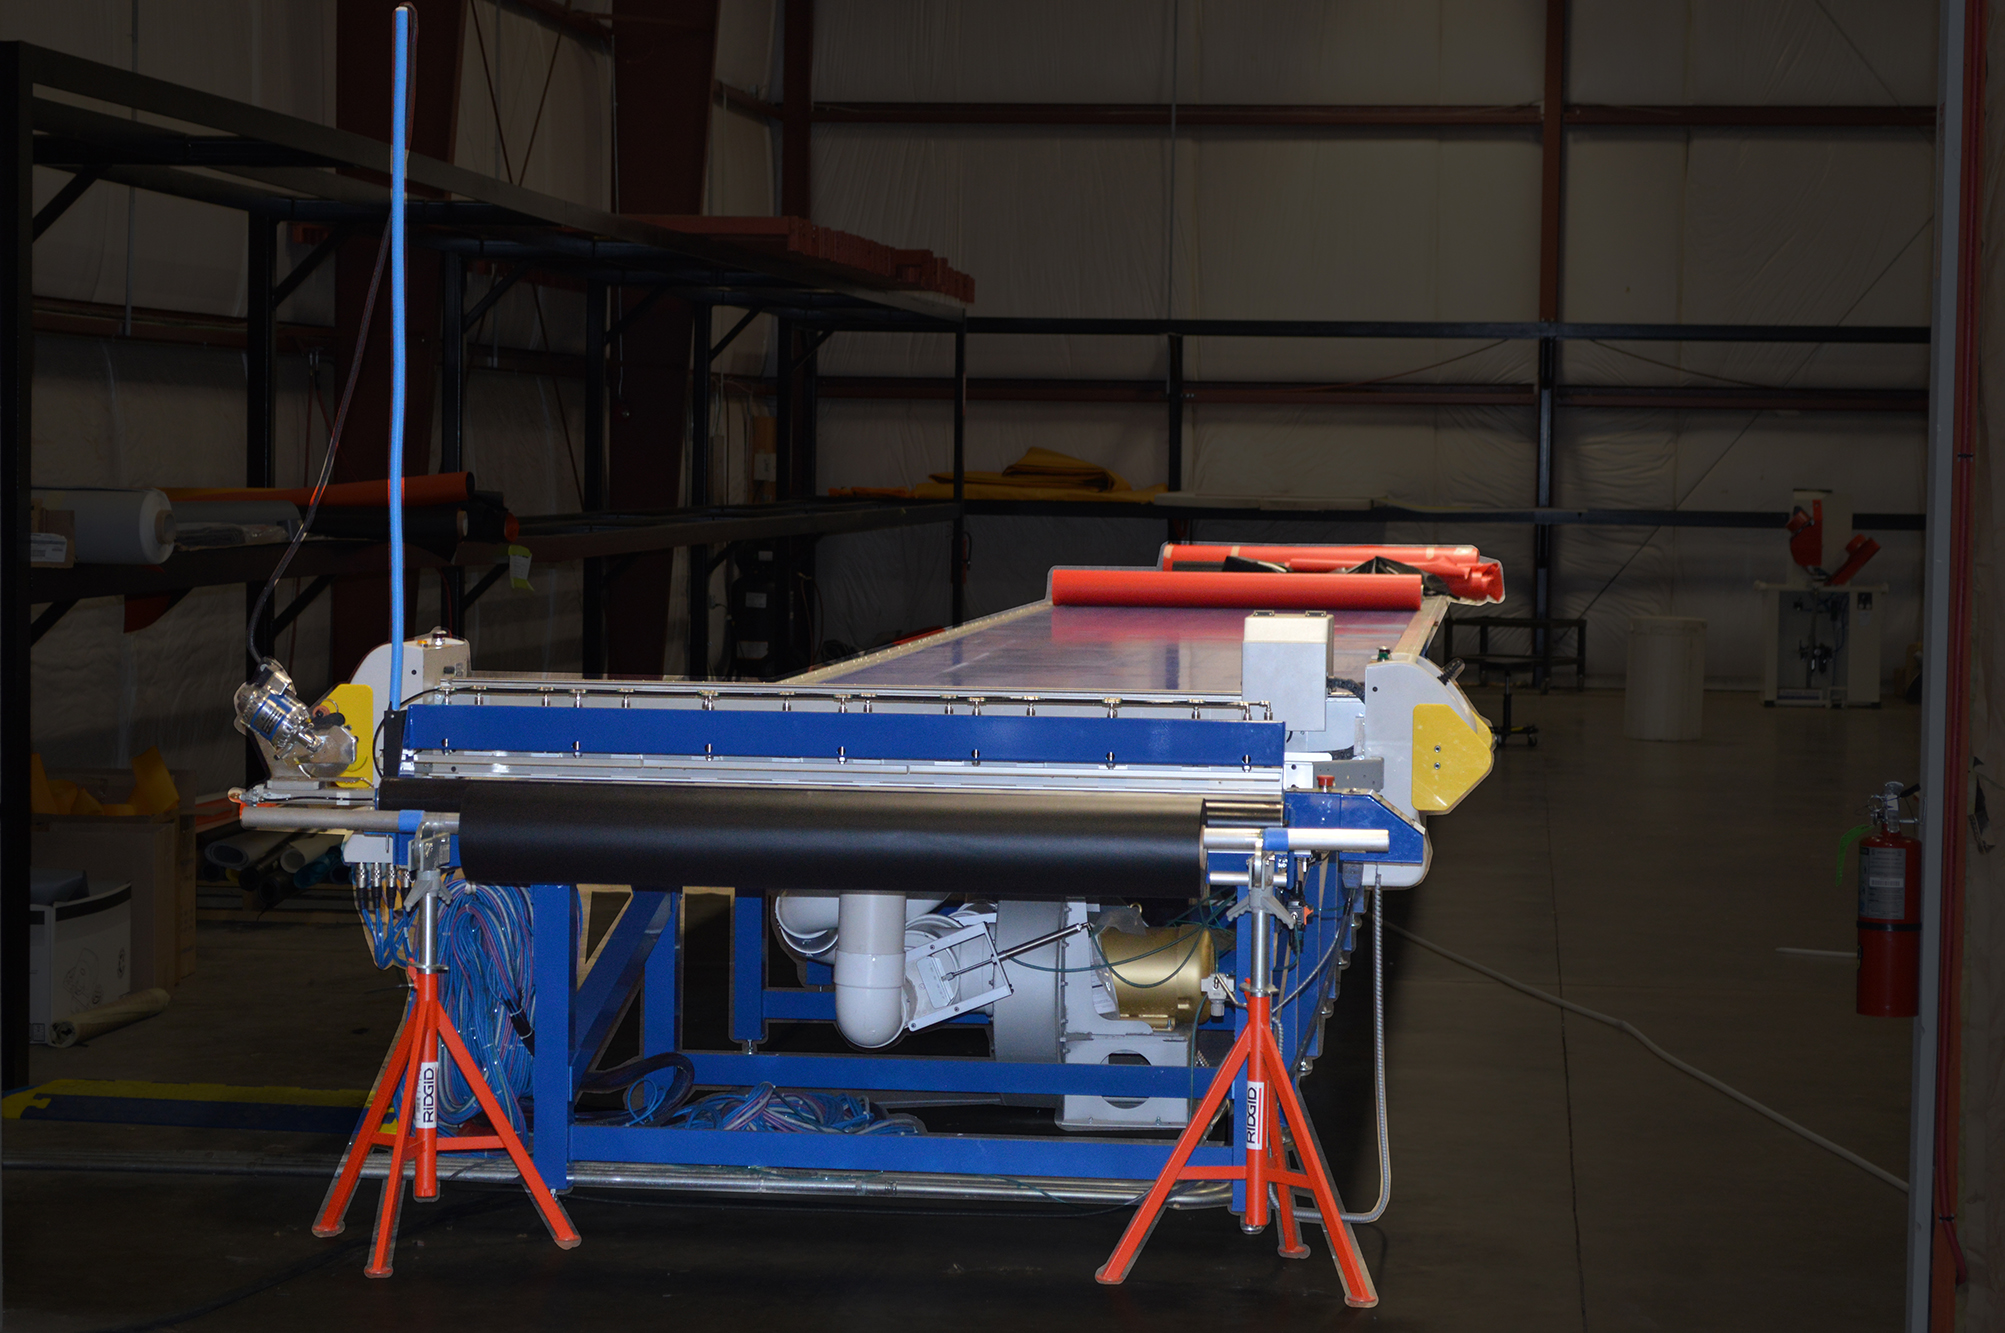 60ft CNC Fabric Cutting Table